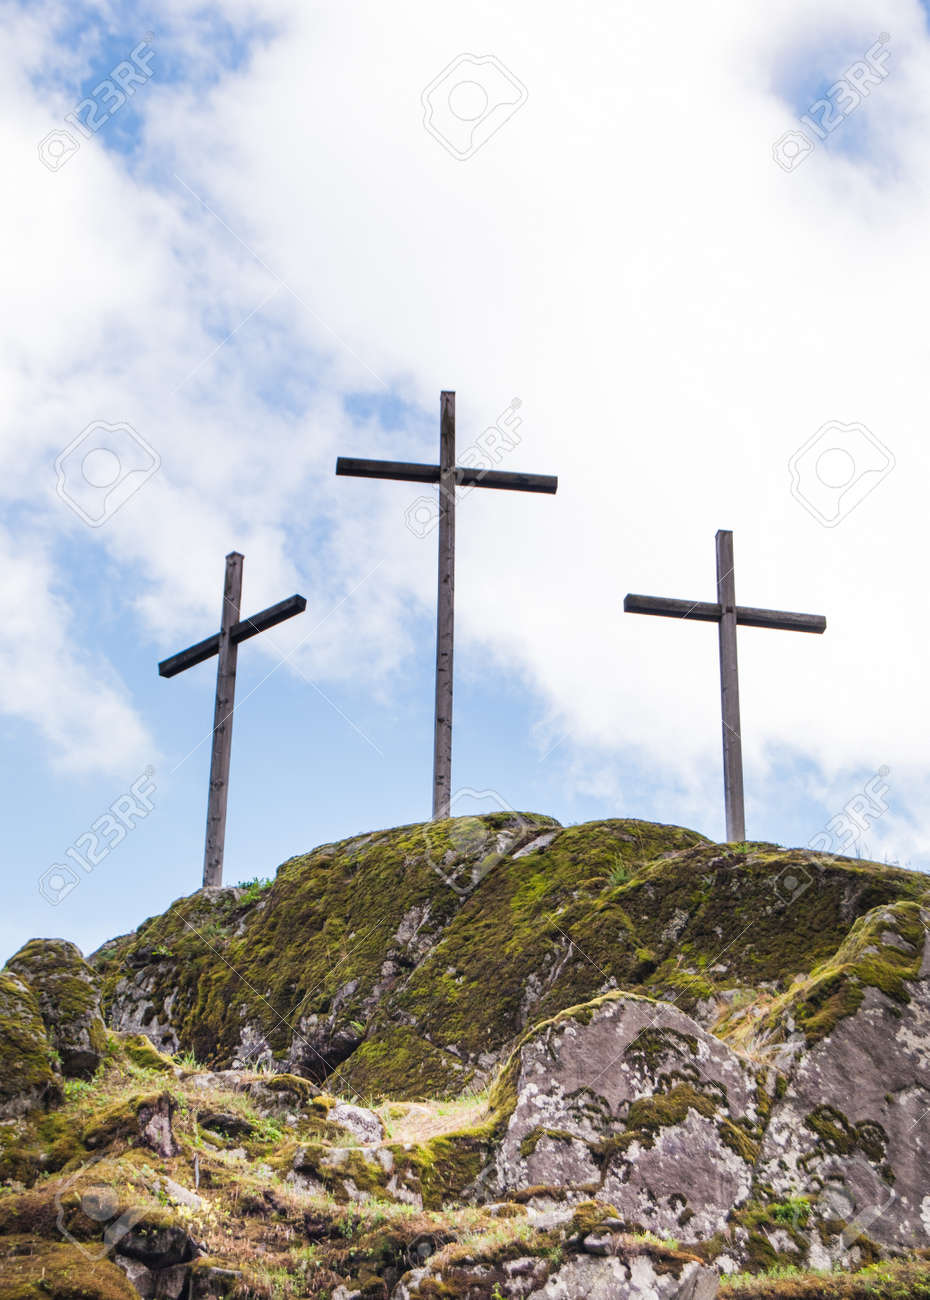 Crosses on the top of a mountain - 106970213